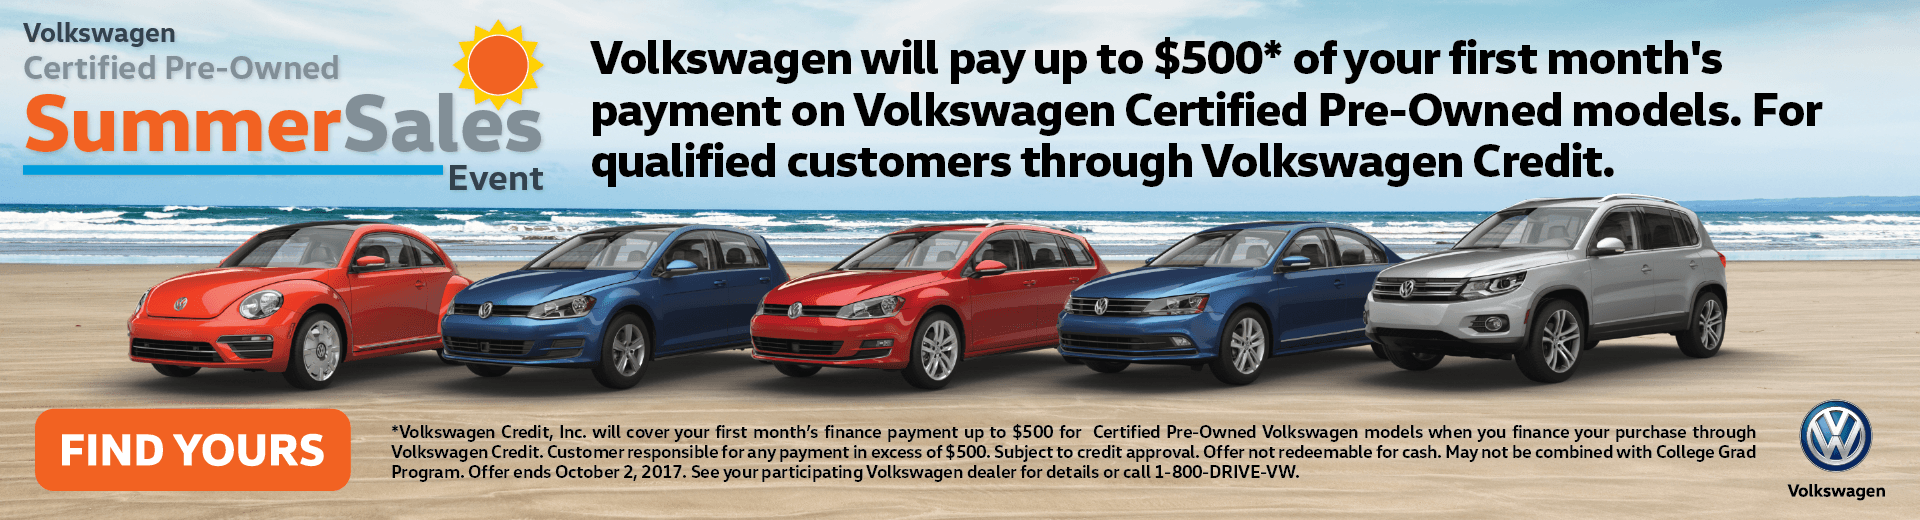 Quirk Vw Braintree Ma 1 Volkswagen Dealer In Massachusetts